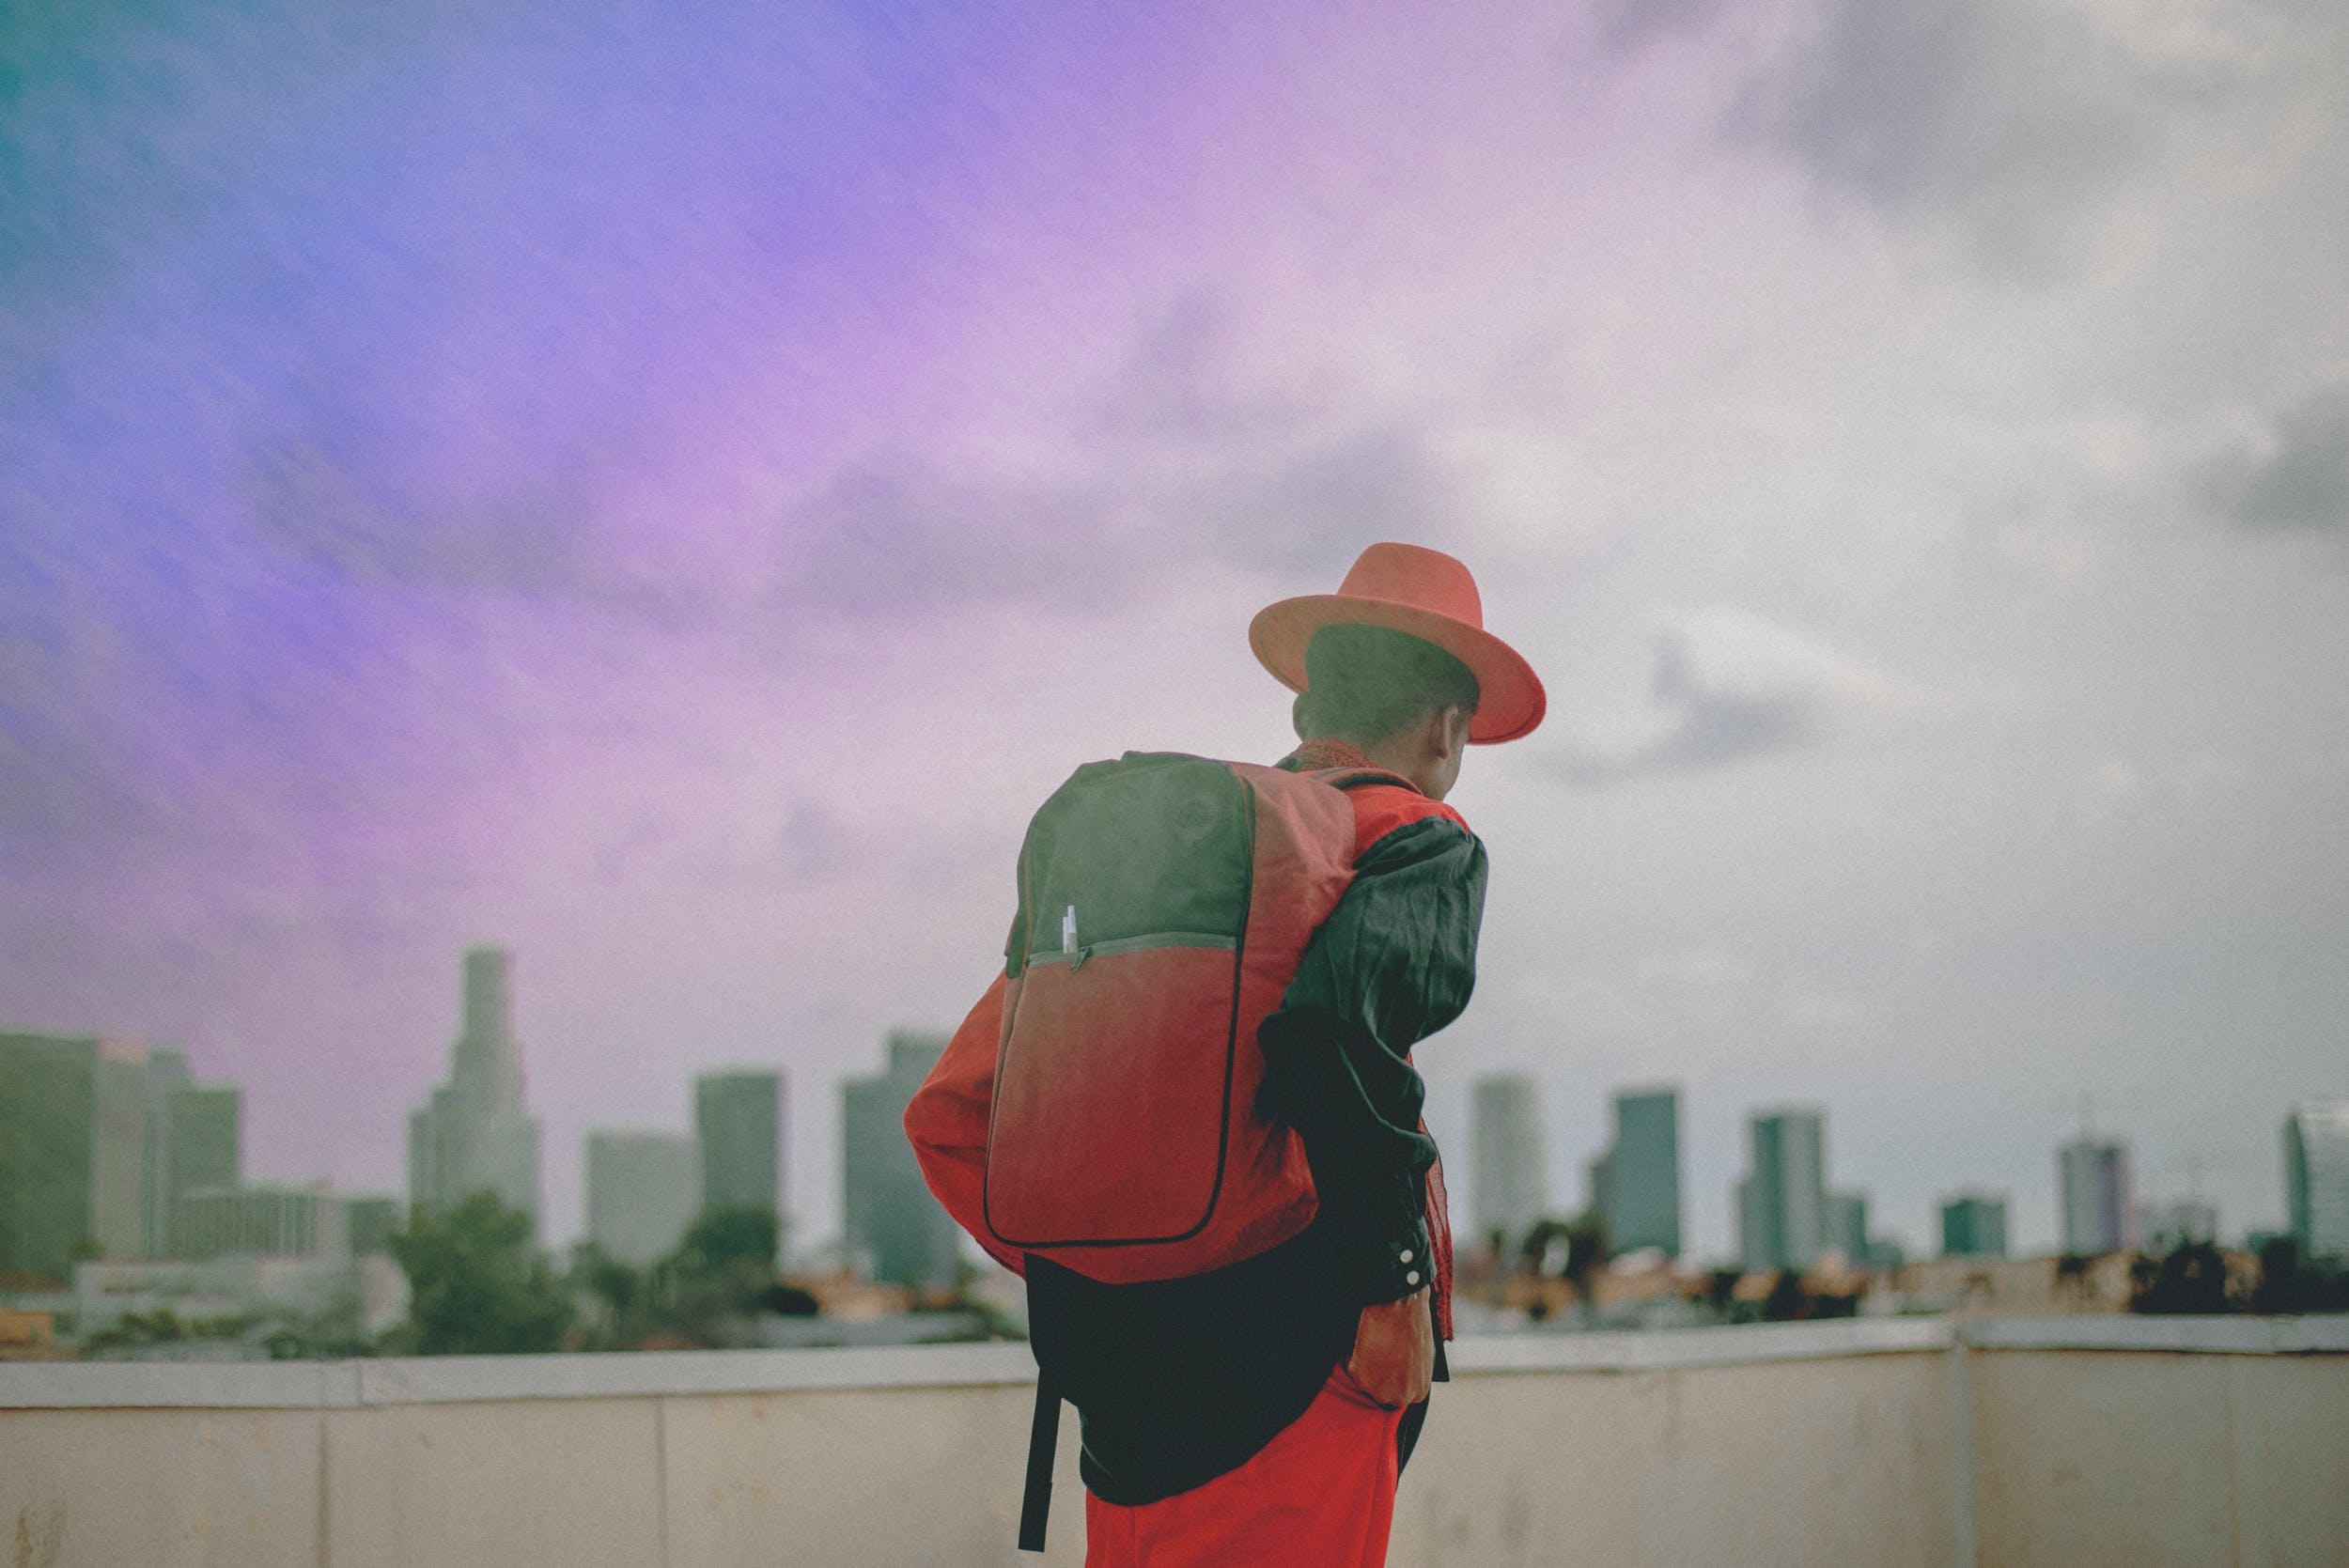 Standing before a skyline with a purple sunset, a man in a red hat with one of the best stash bags, the Skunk Bag, over his shoulder.